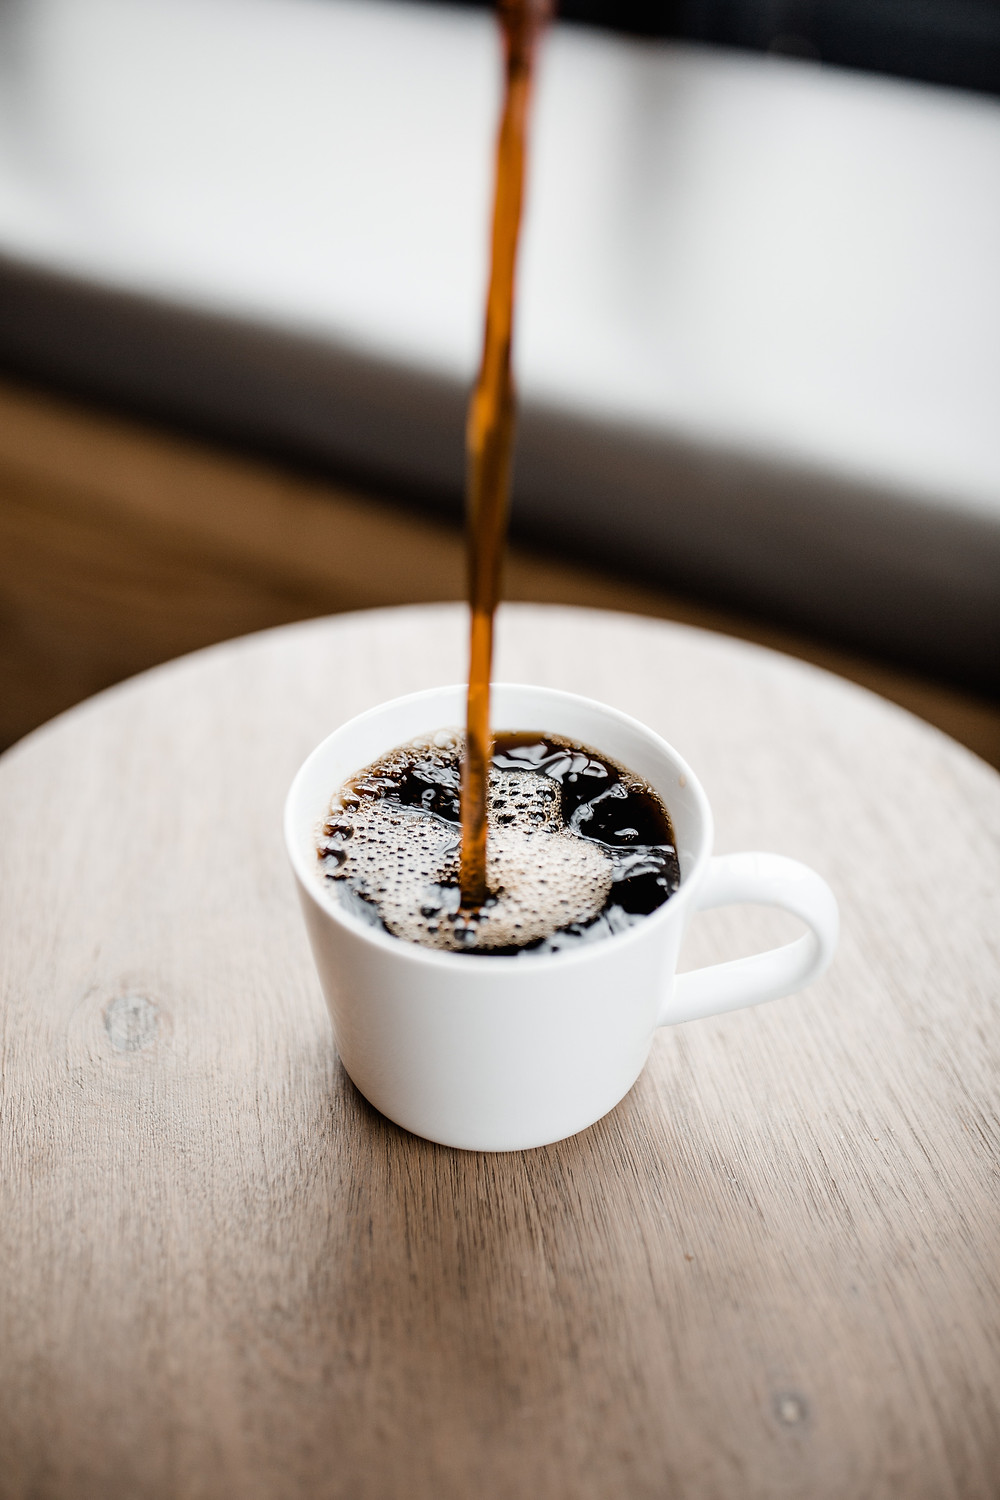 Fresh Cup of Coffee - Don't Let A Coffee Stain On Your Carpet Ruin Your Day!